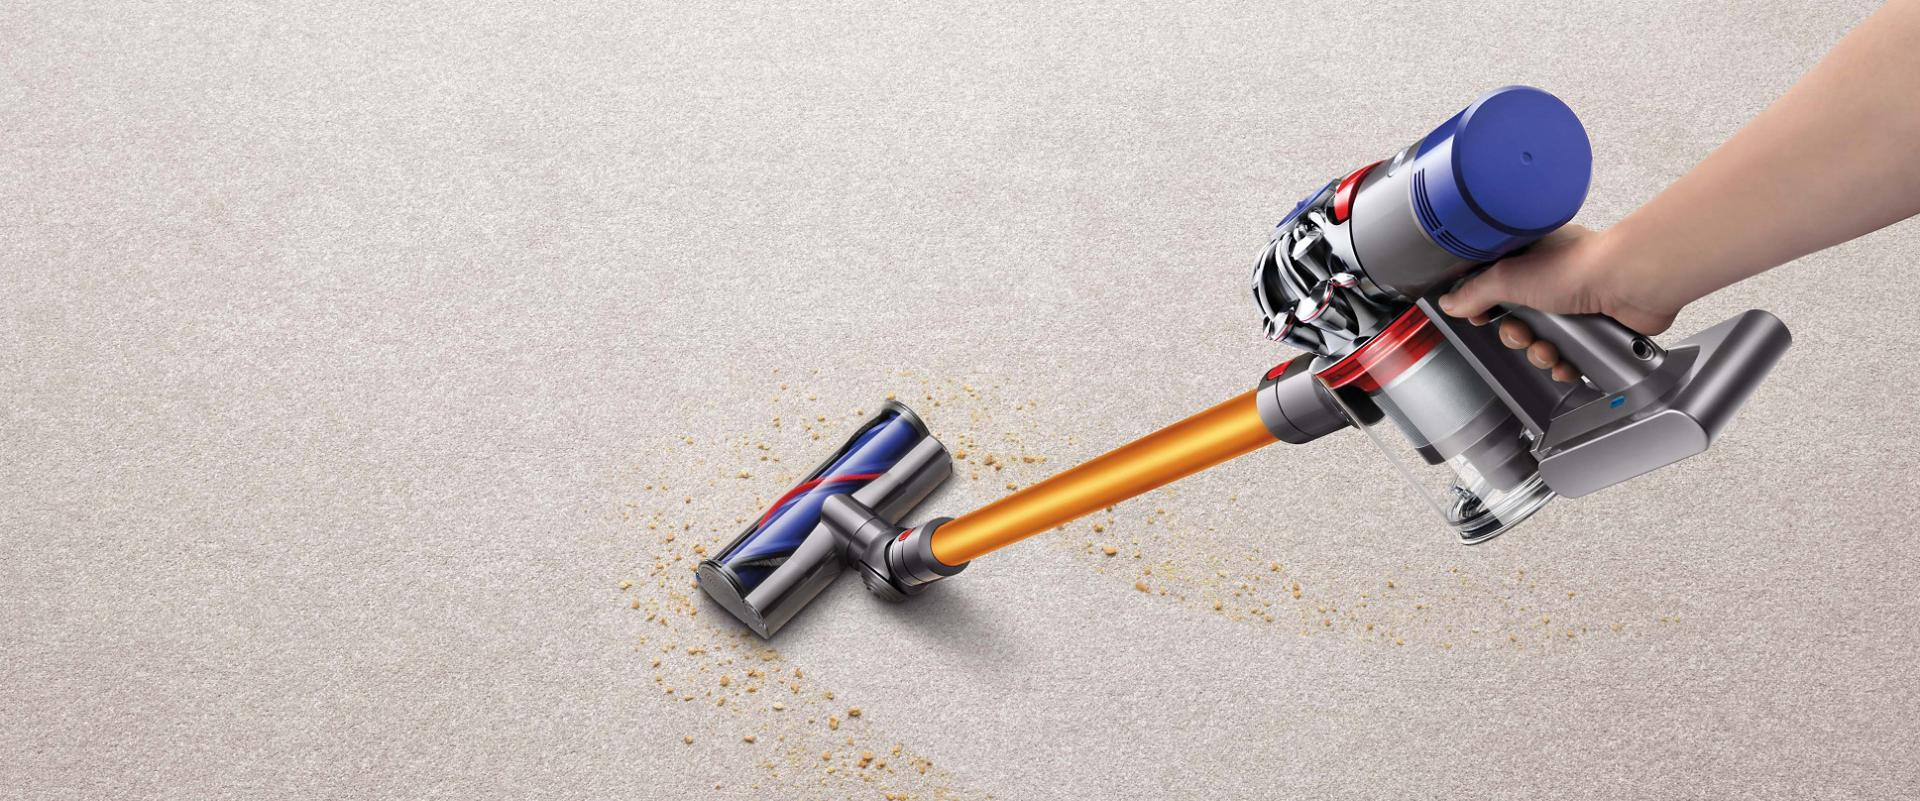 Dyson V8 vacuum cleaner picking up debris from carpet